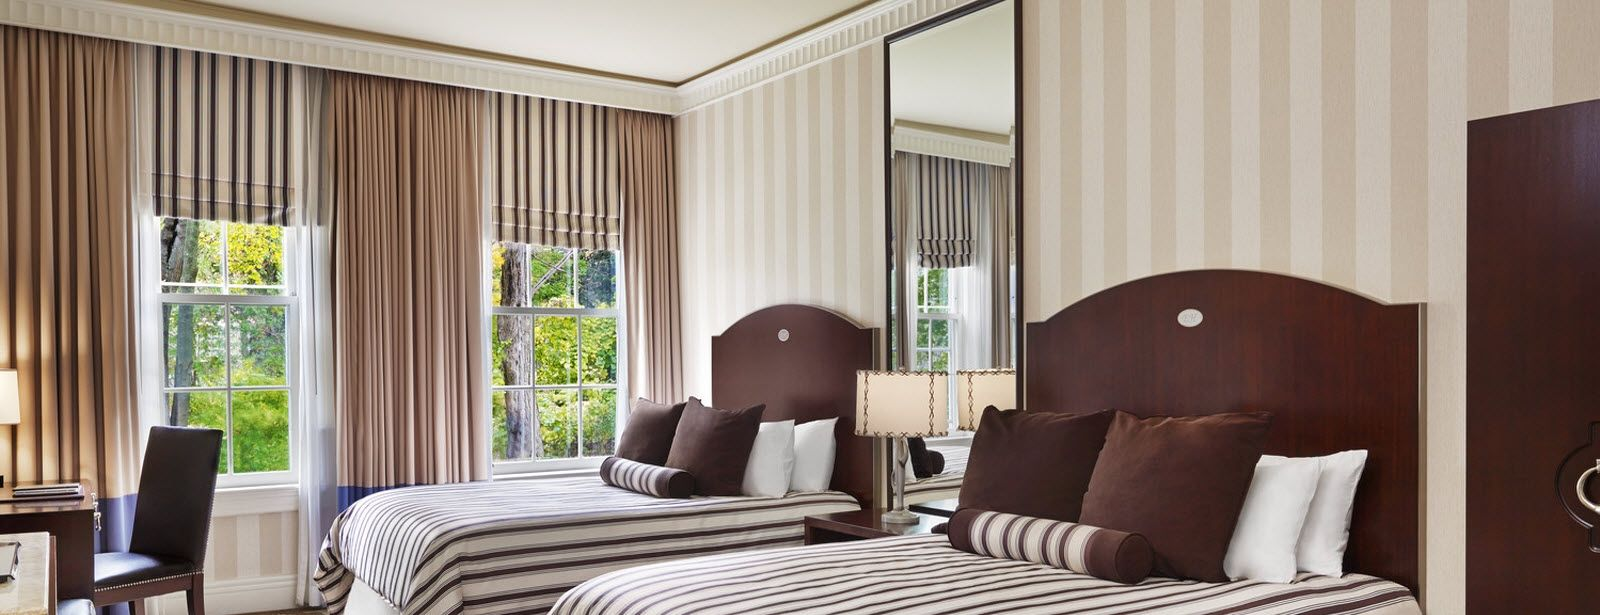 The Equinox, a Luxury Collection Golf Resort & Spa, Vermont superior guest room